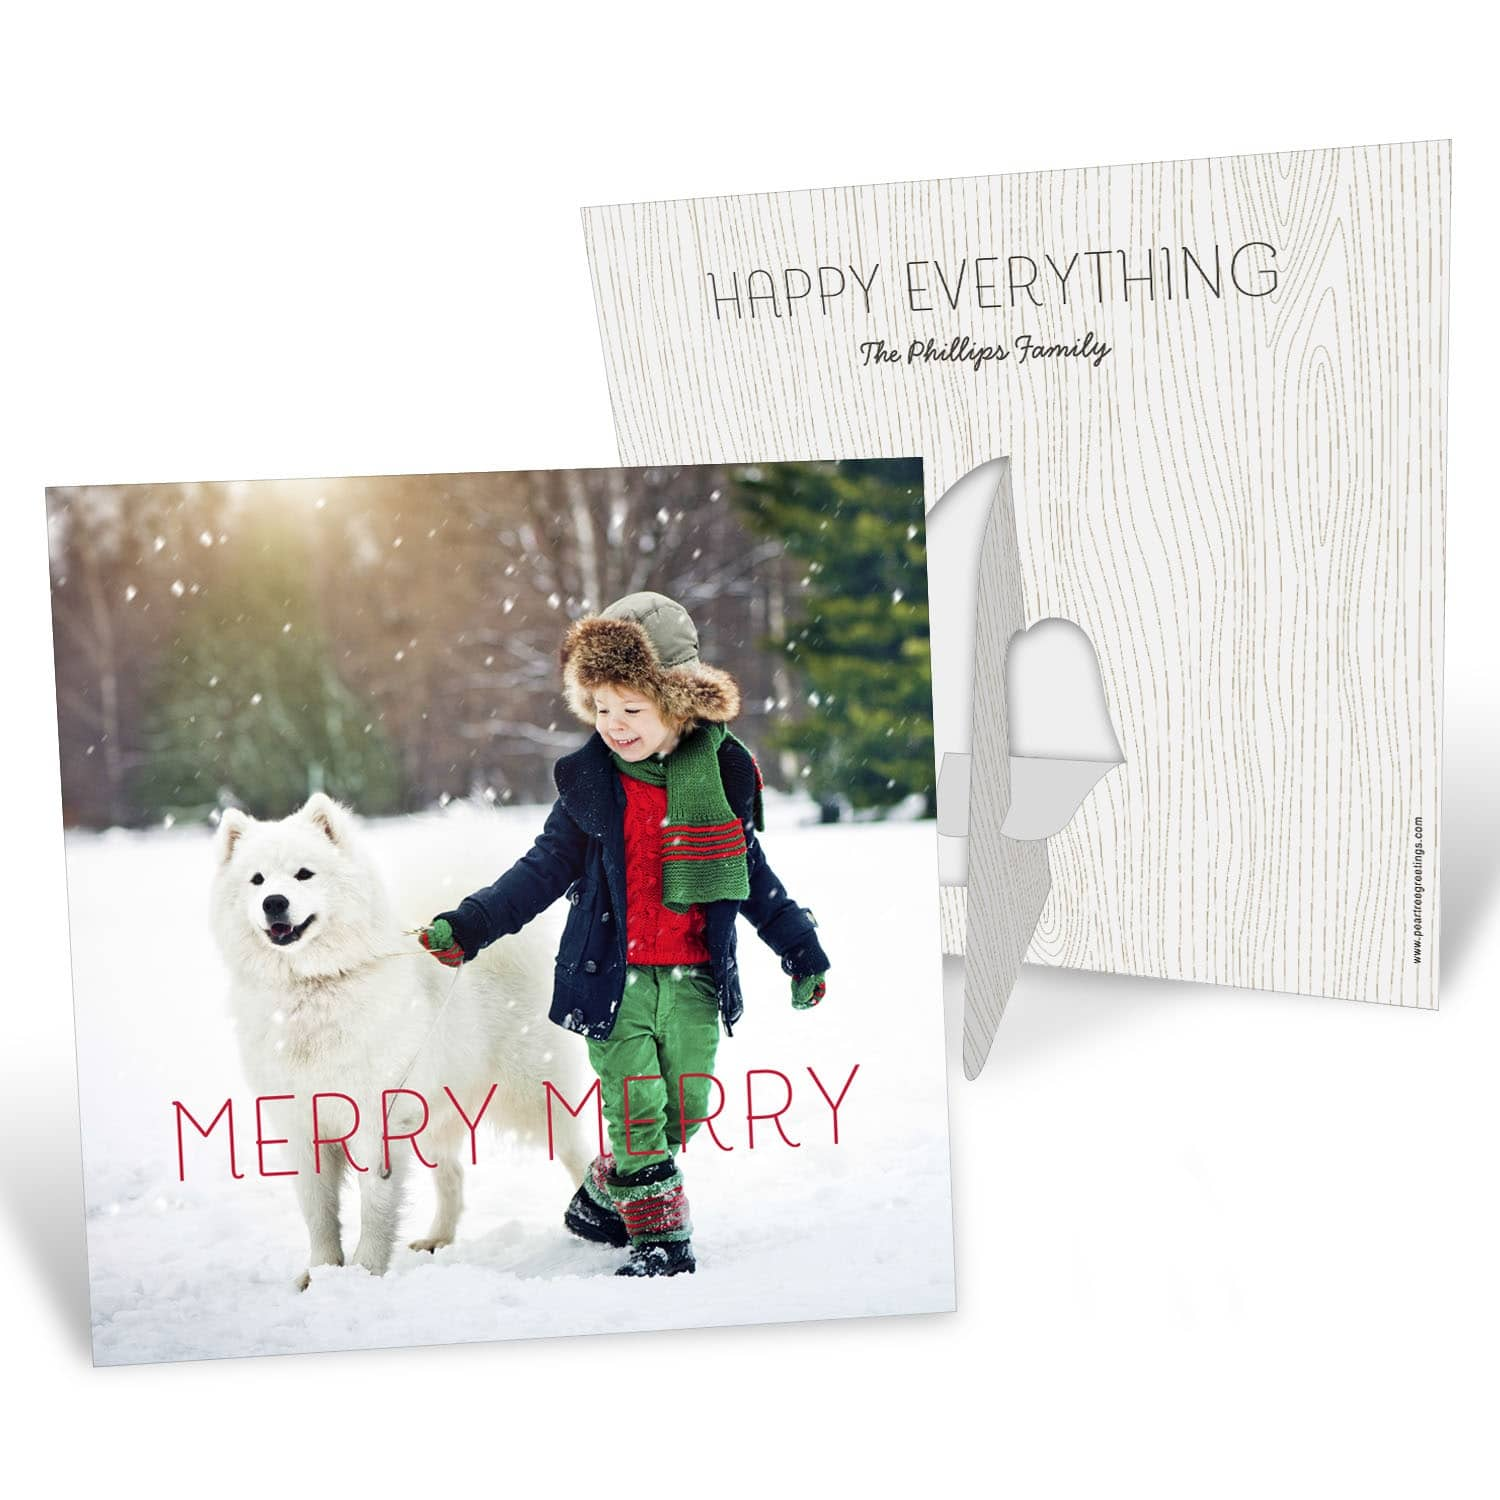 Holiday stationery from pear tree greetings caffeine and cabernet pear tree greetings kristyandbryce Gallery